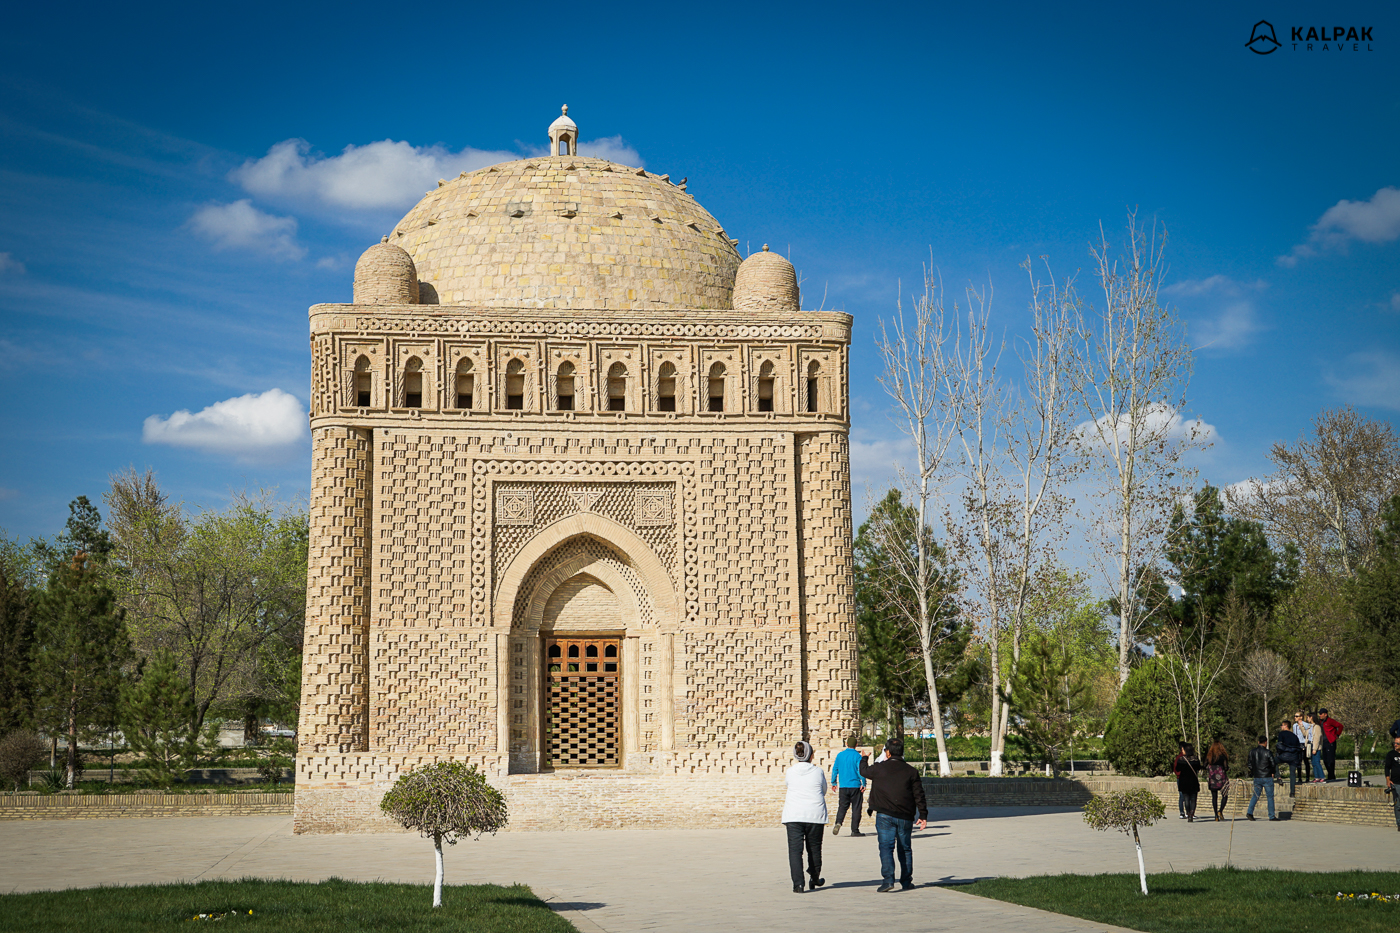 Samani Mausoleum in Bukhara is one of the oldest mausoleums